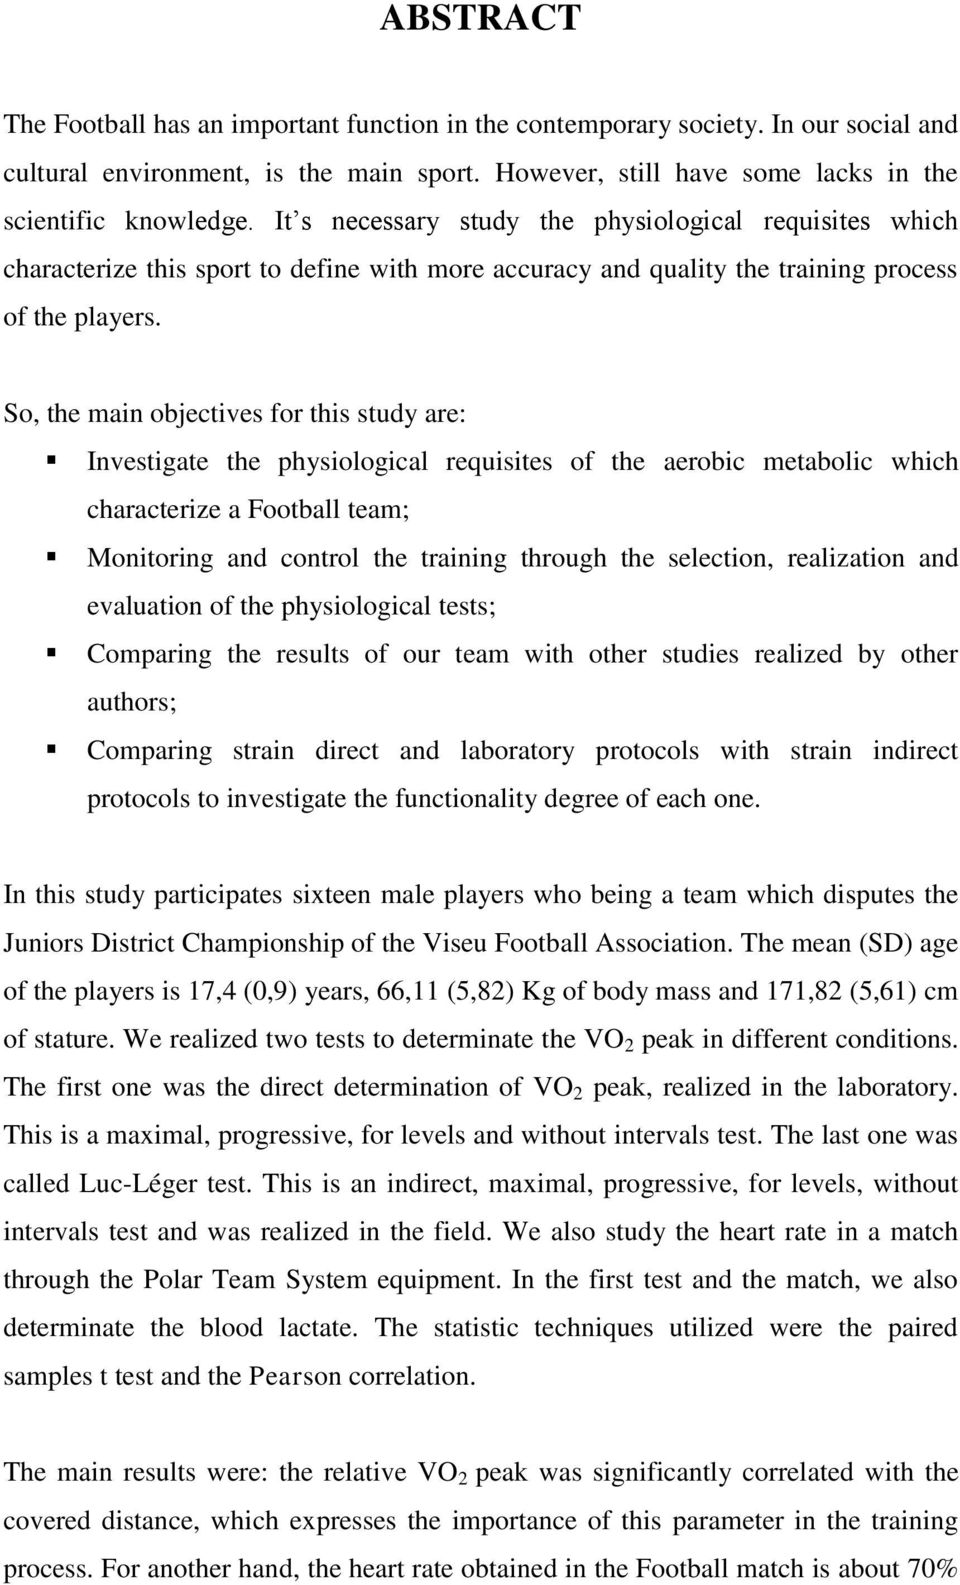 So, the main objectives for this study are: Investigate the physiological requisites of the aerobic metabolic which characterize a Football team; Monitoring and control the training through the